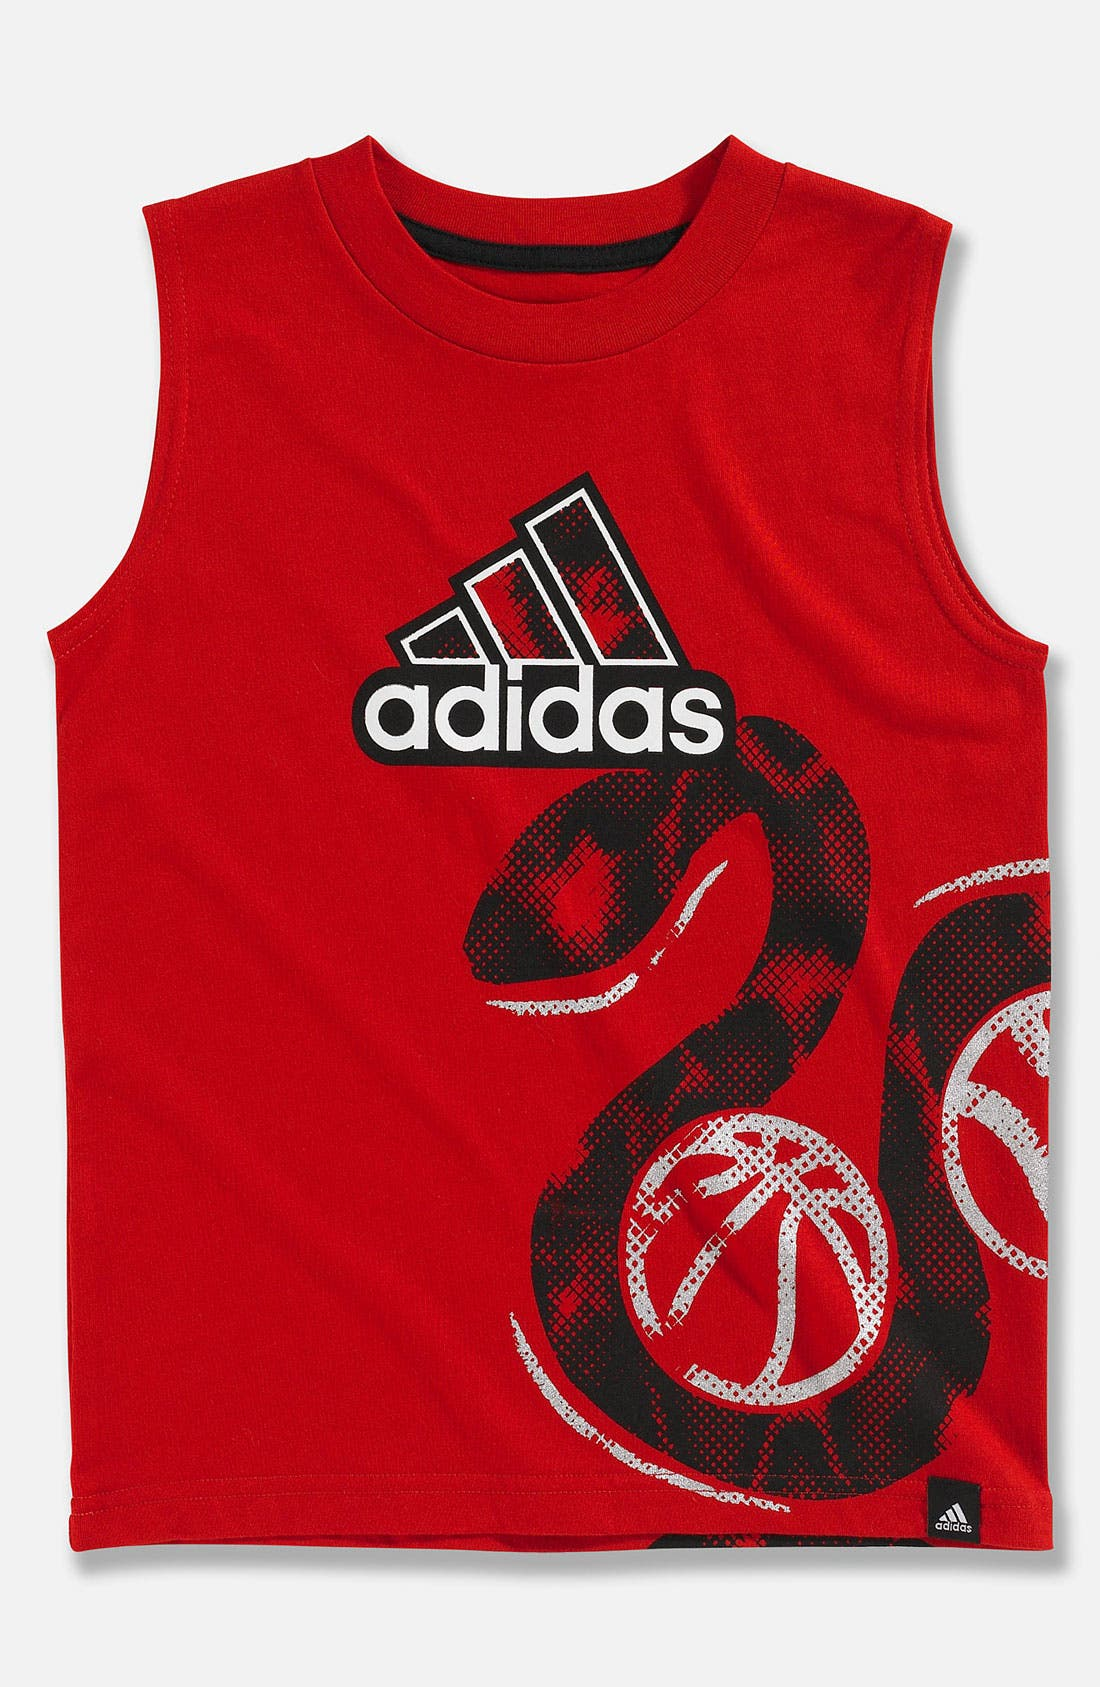 Alternate Image 1 Selected - adidas 'Big Baller' Tank Top (Little Boys)